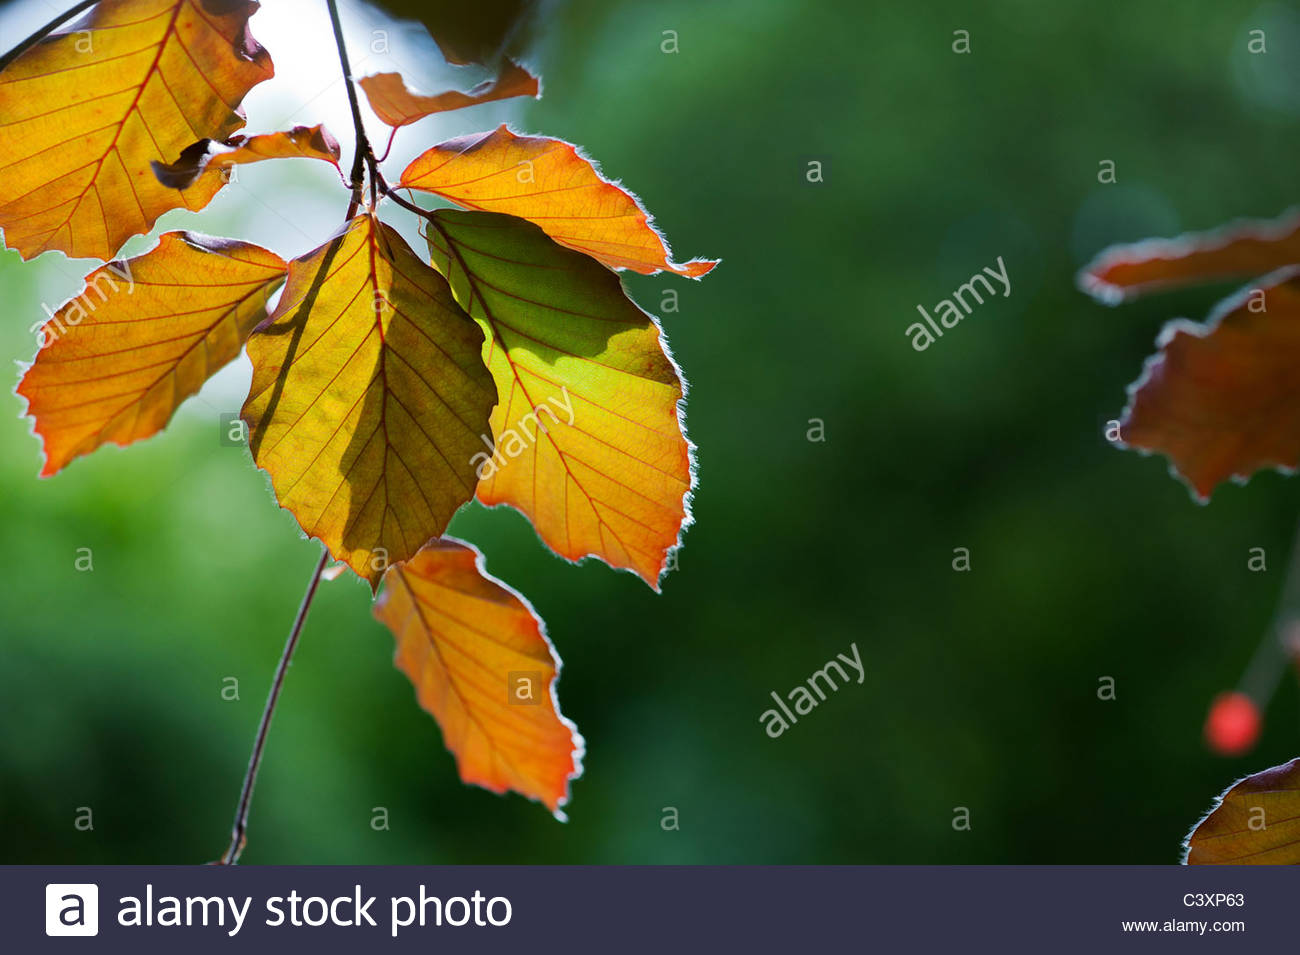 Fagus sylvatica f. purpurea. Copper beech leaves lit by sunlight. UK - Stock Image